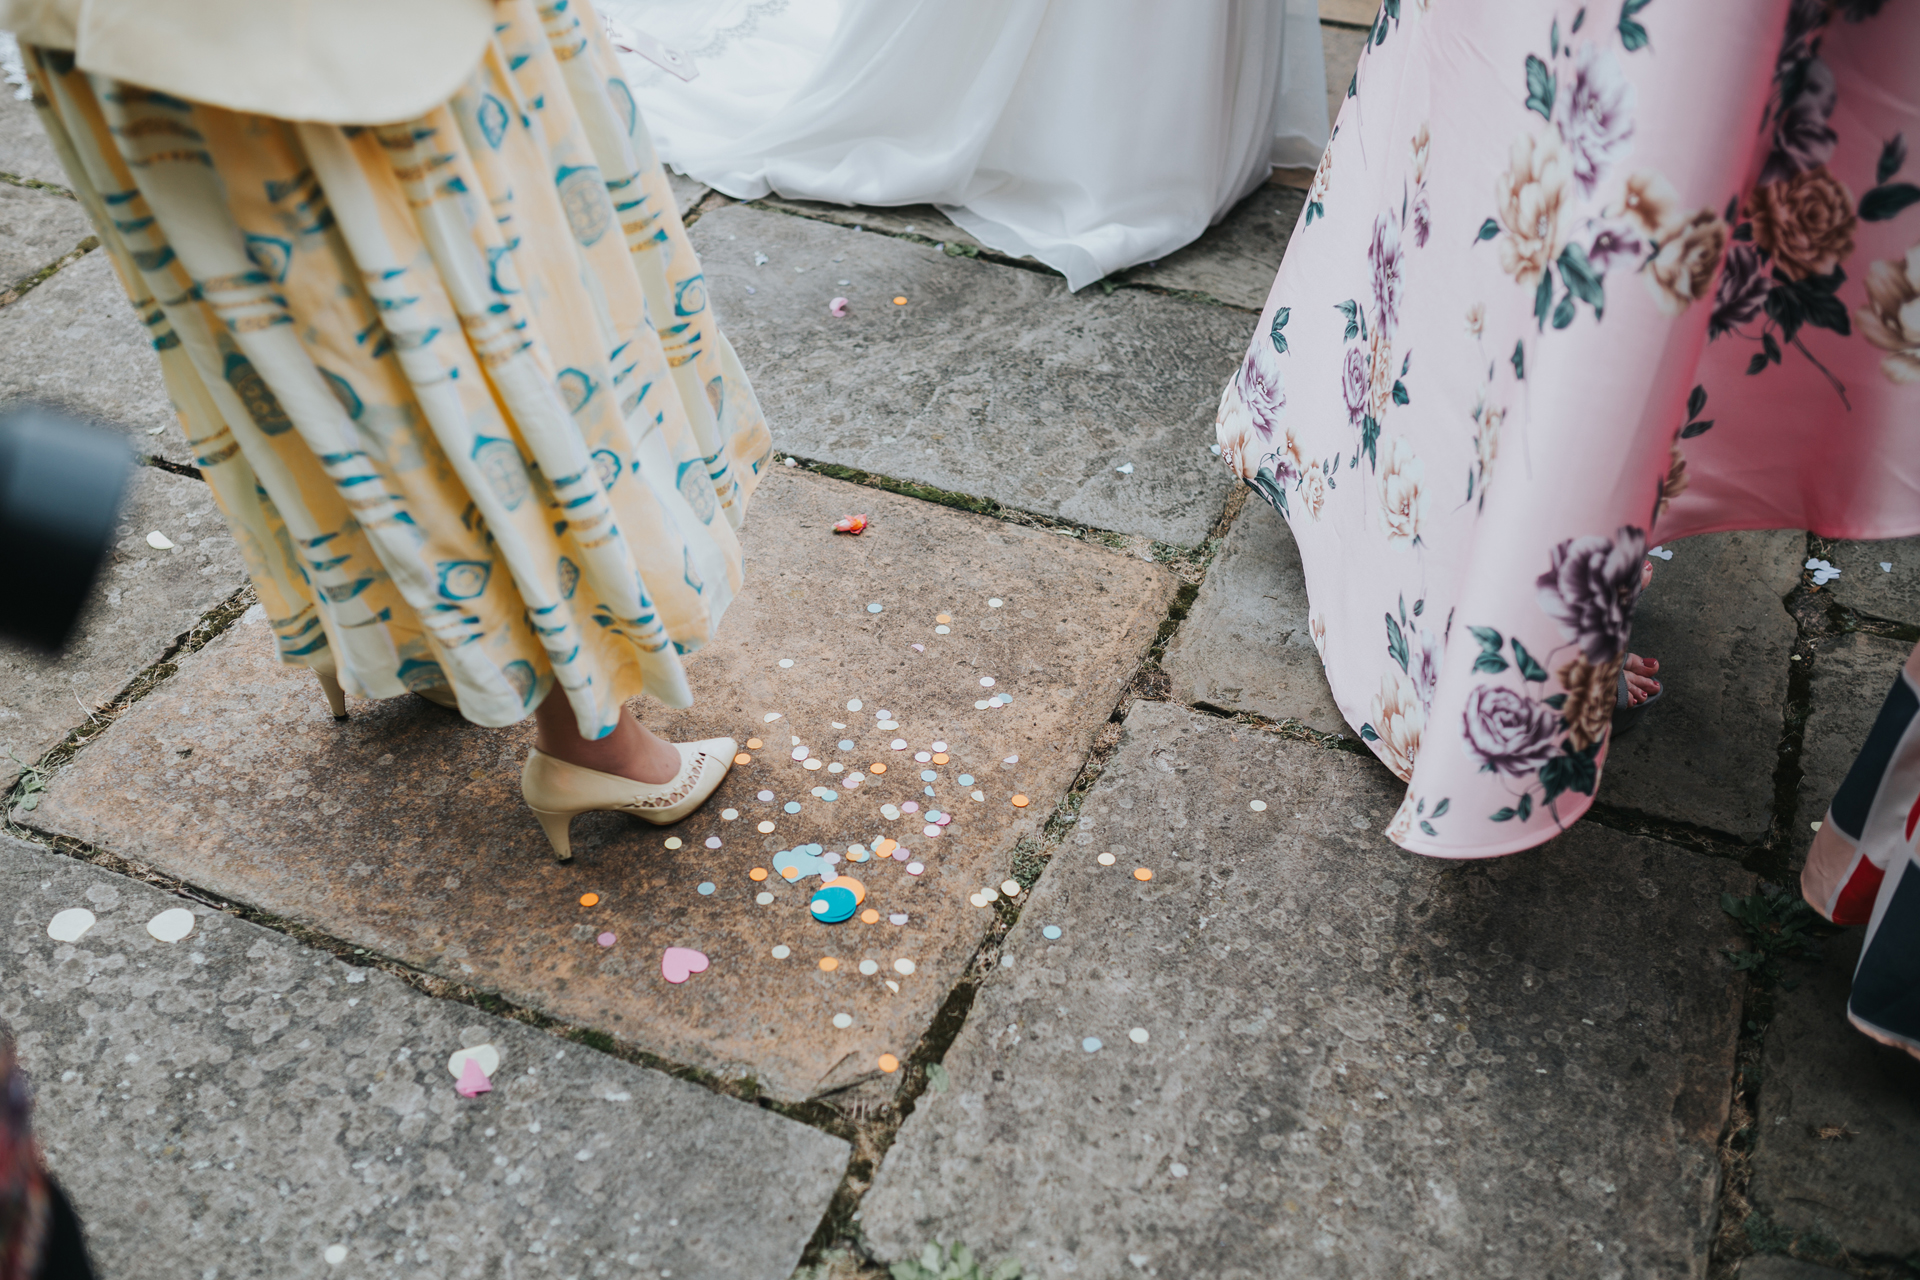 Brightly coloured confetti spilt on the floor.